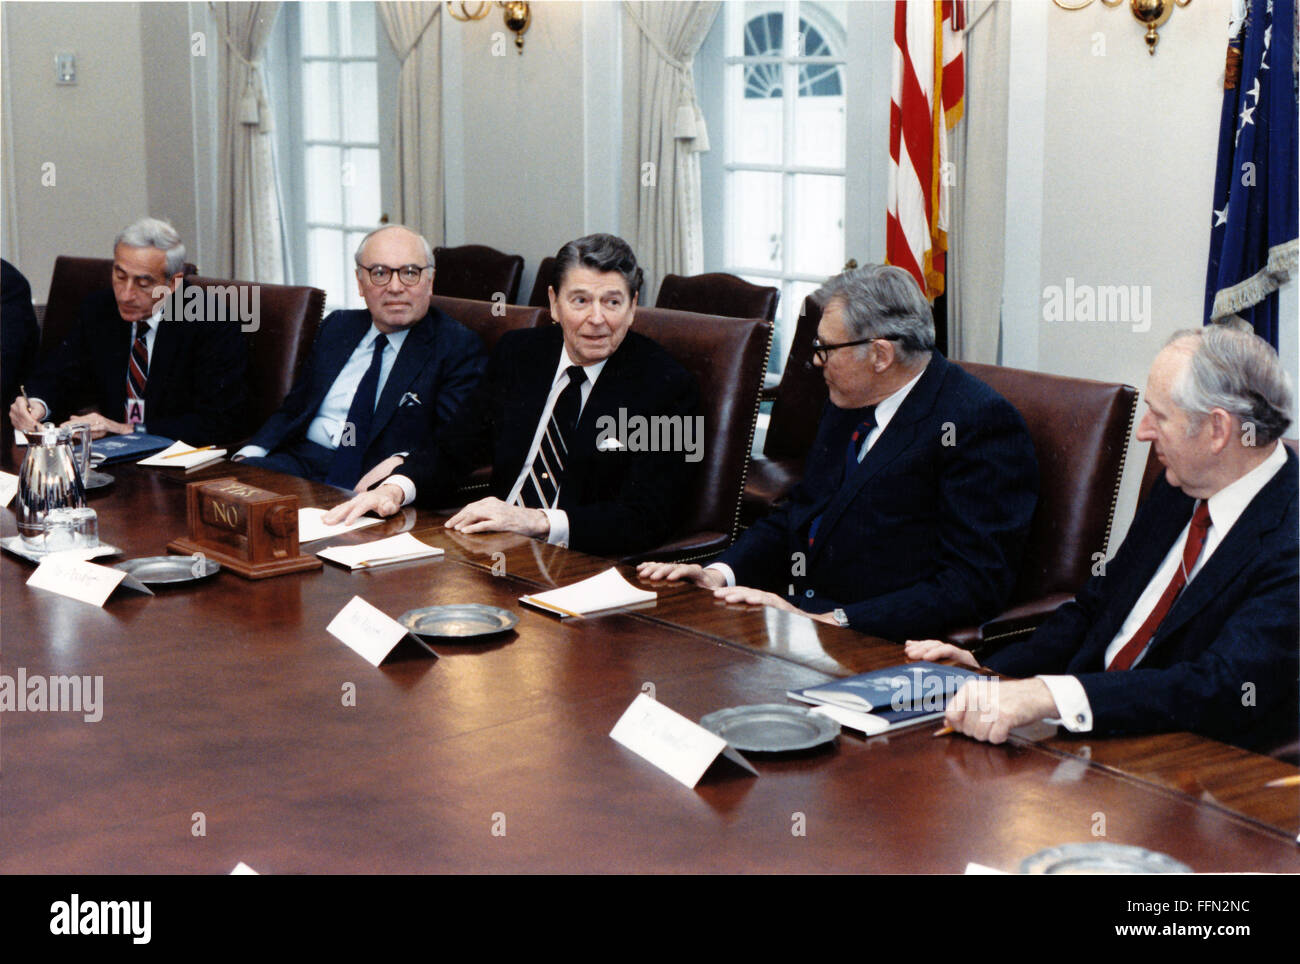 Washington, District of Columbia, USA. 22nd Nov, 2009. United States President Ronald Reagan participates in a meeting - Stock Image